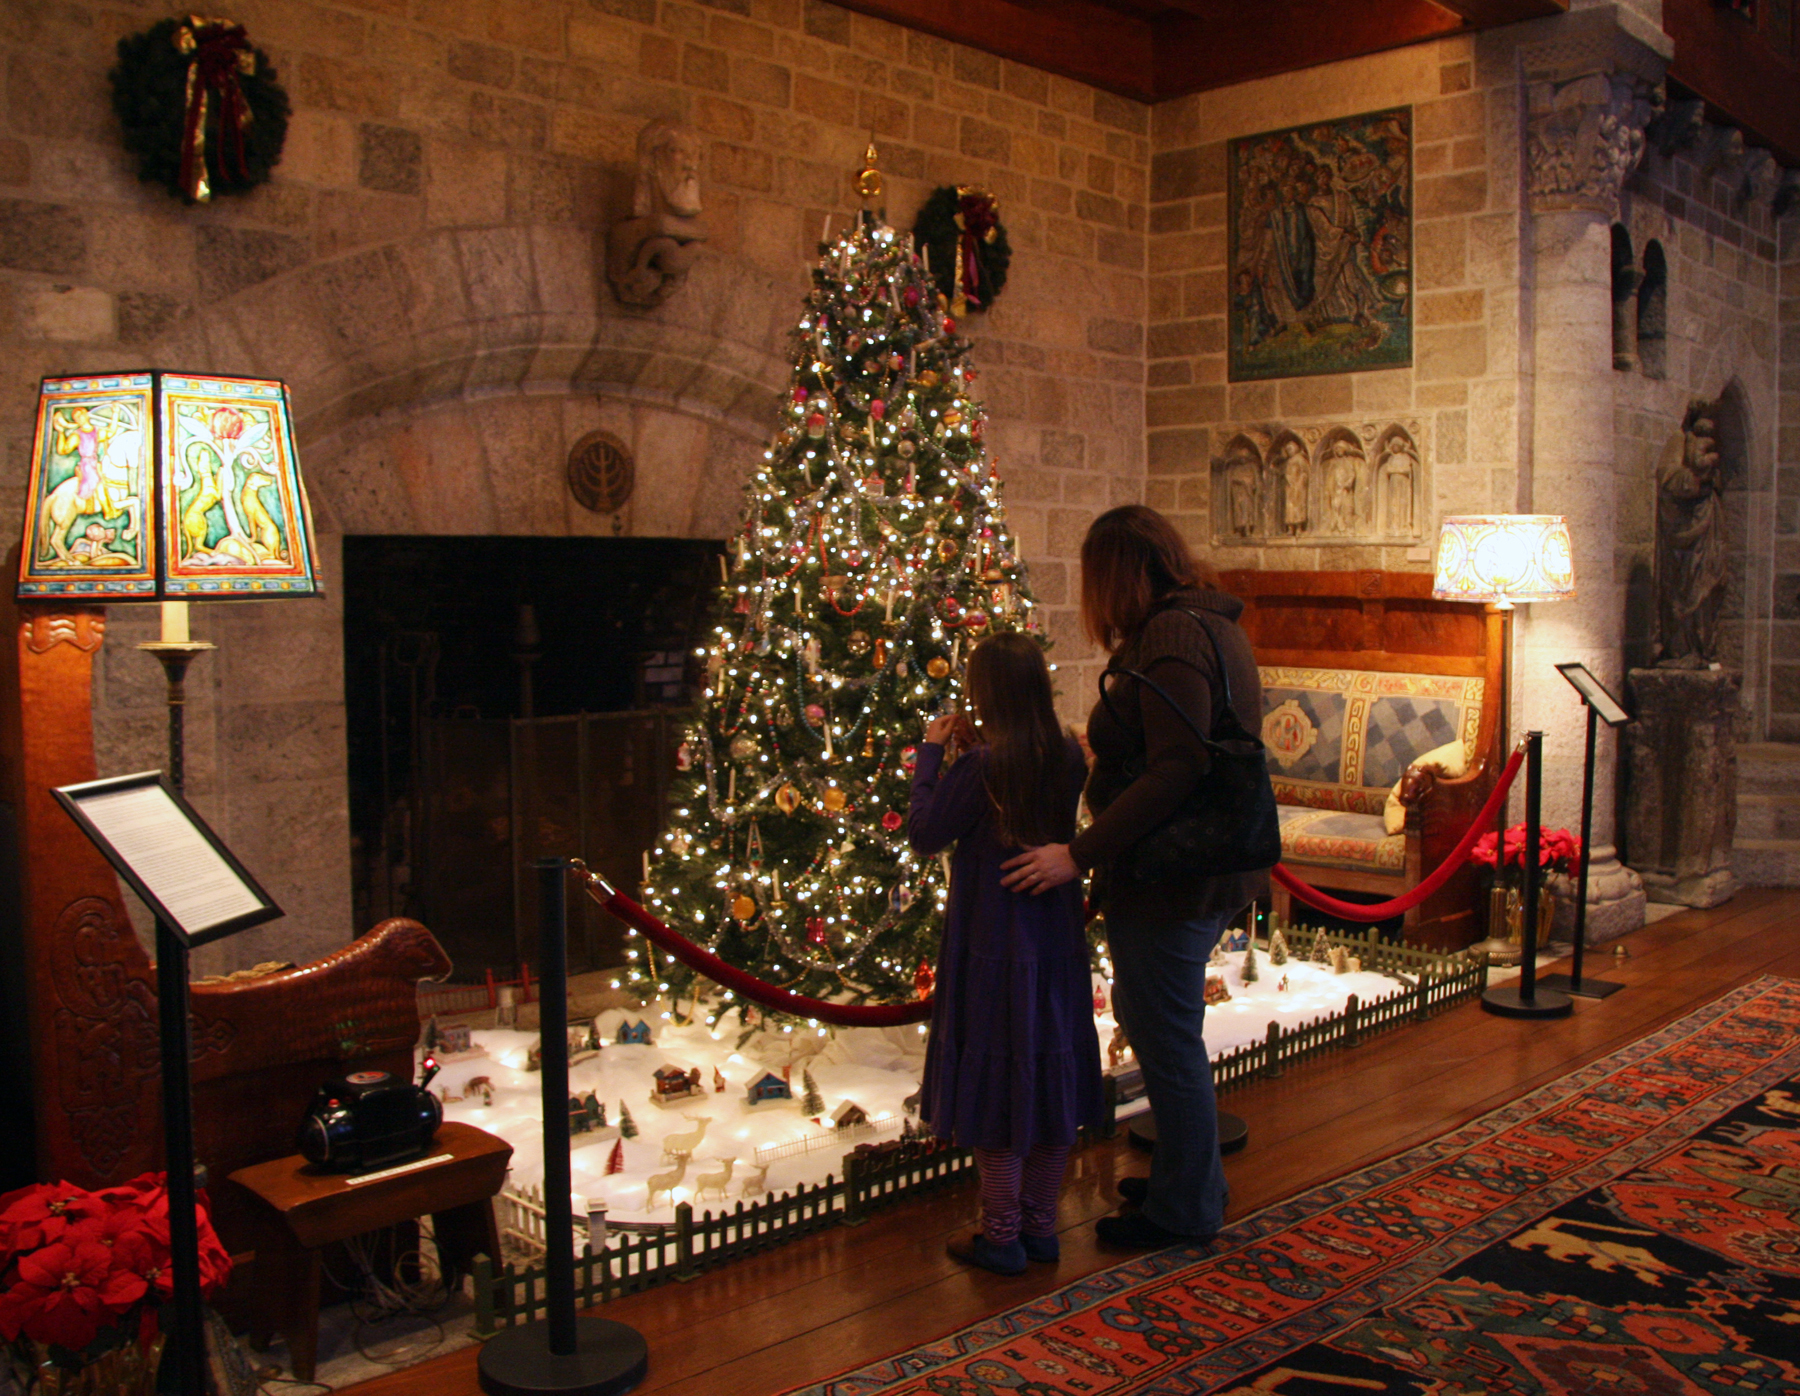 Visitors to the 2015 year's Homeschool Days enjoy Glencairn's Christmas tree, decorated with vintage and antique ornaments. Brother Bob Reinke, a Franciscan friar in Hoboken, New Jersey, spent half a century collecting the ornaments. The village beneath the tree includes an operating 1950s Lionel toy train.